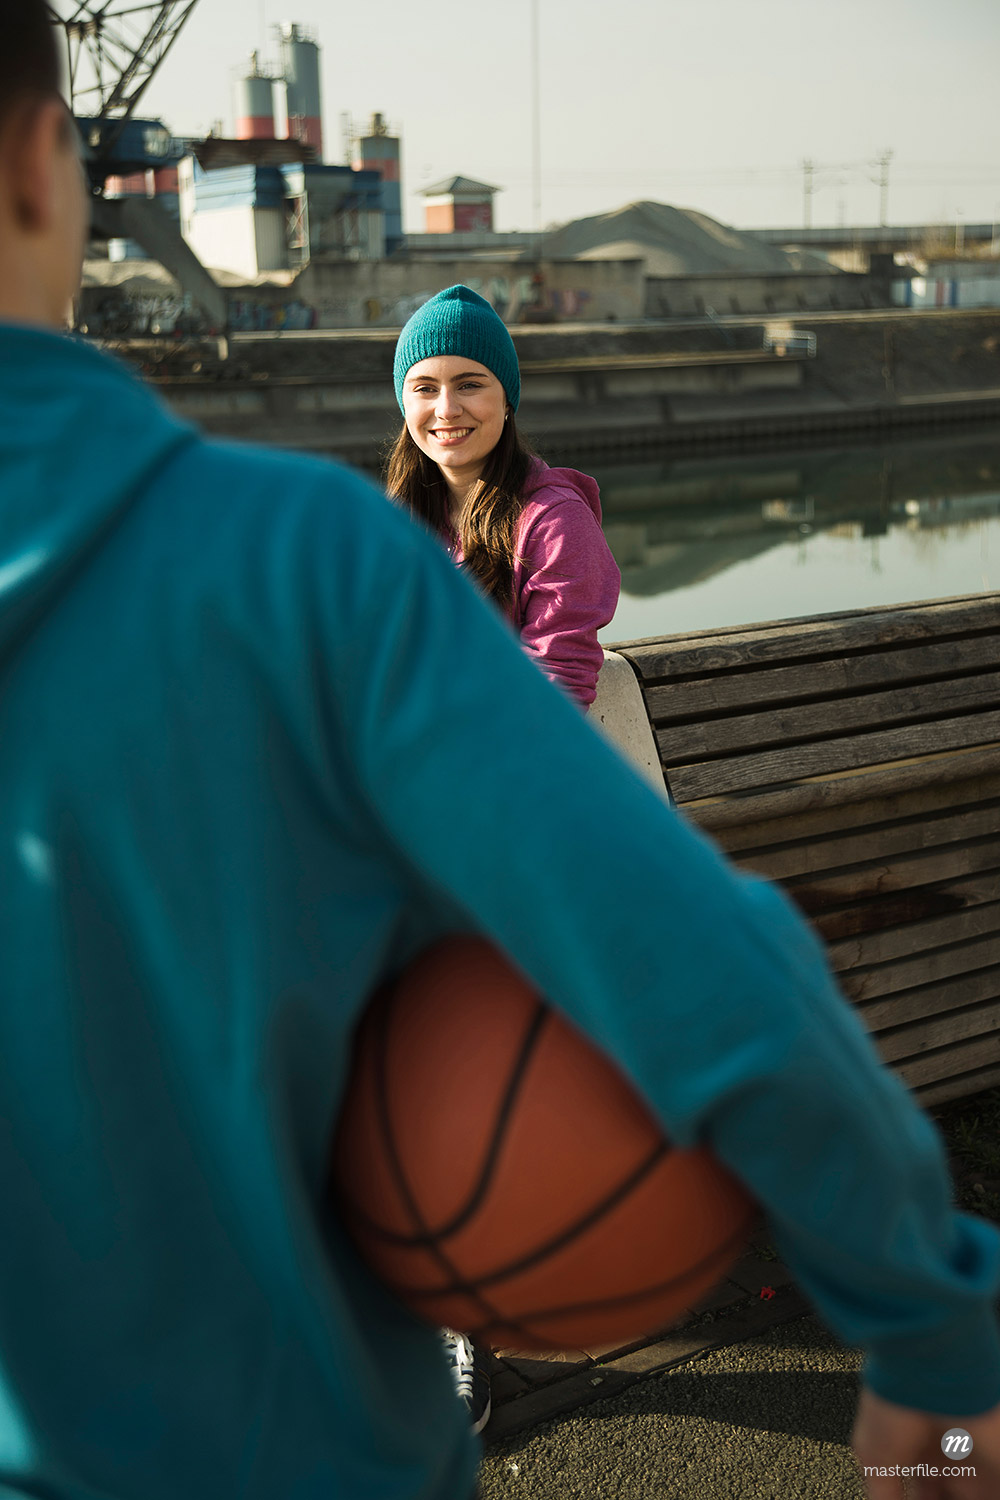 Teenage girl outdoors wearing toque, smiling and looking at teenage boy holding basketball, industrial area, Mannheim, Germany © Uwe Umstätter / Masterfile